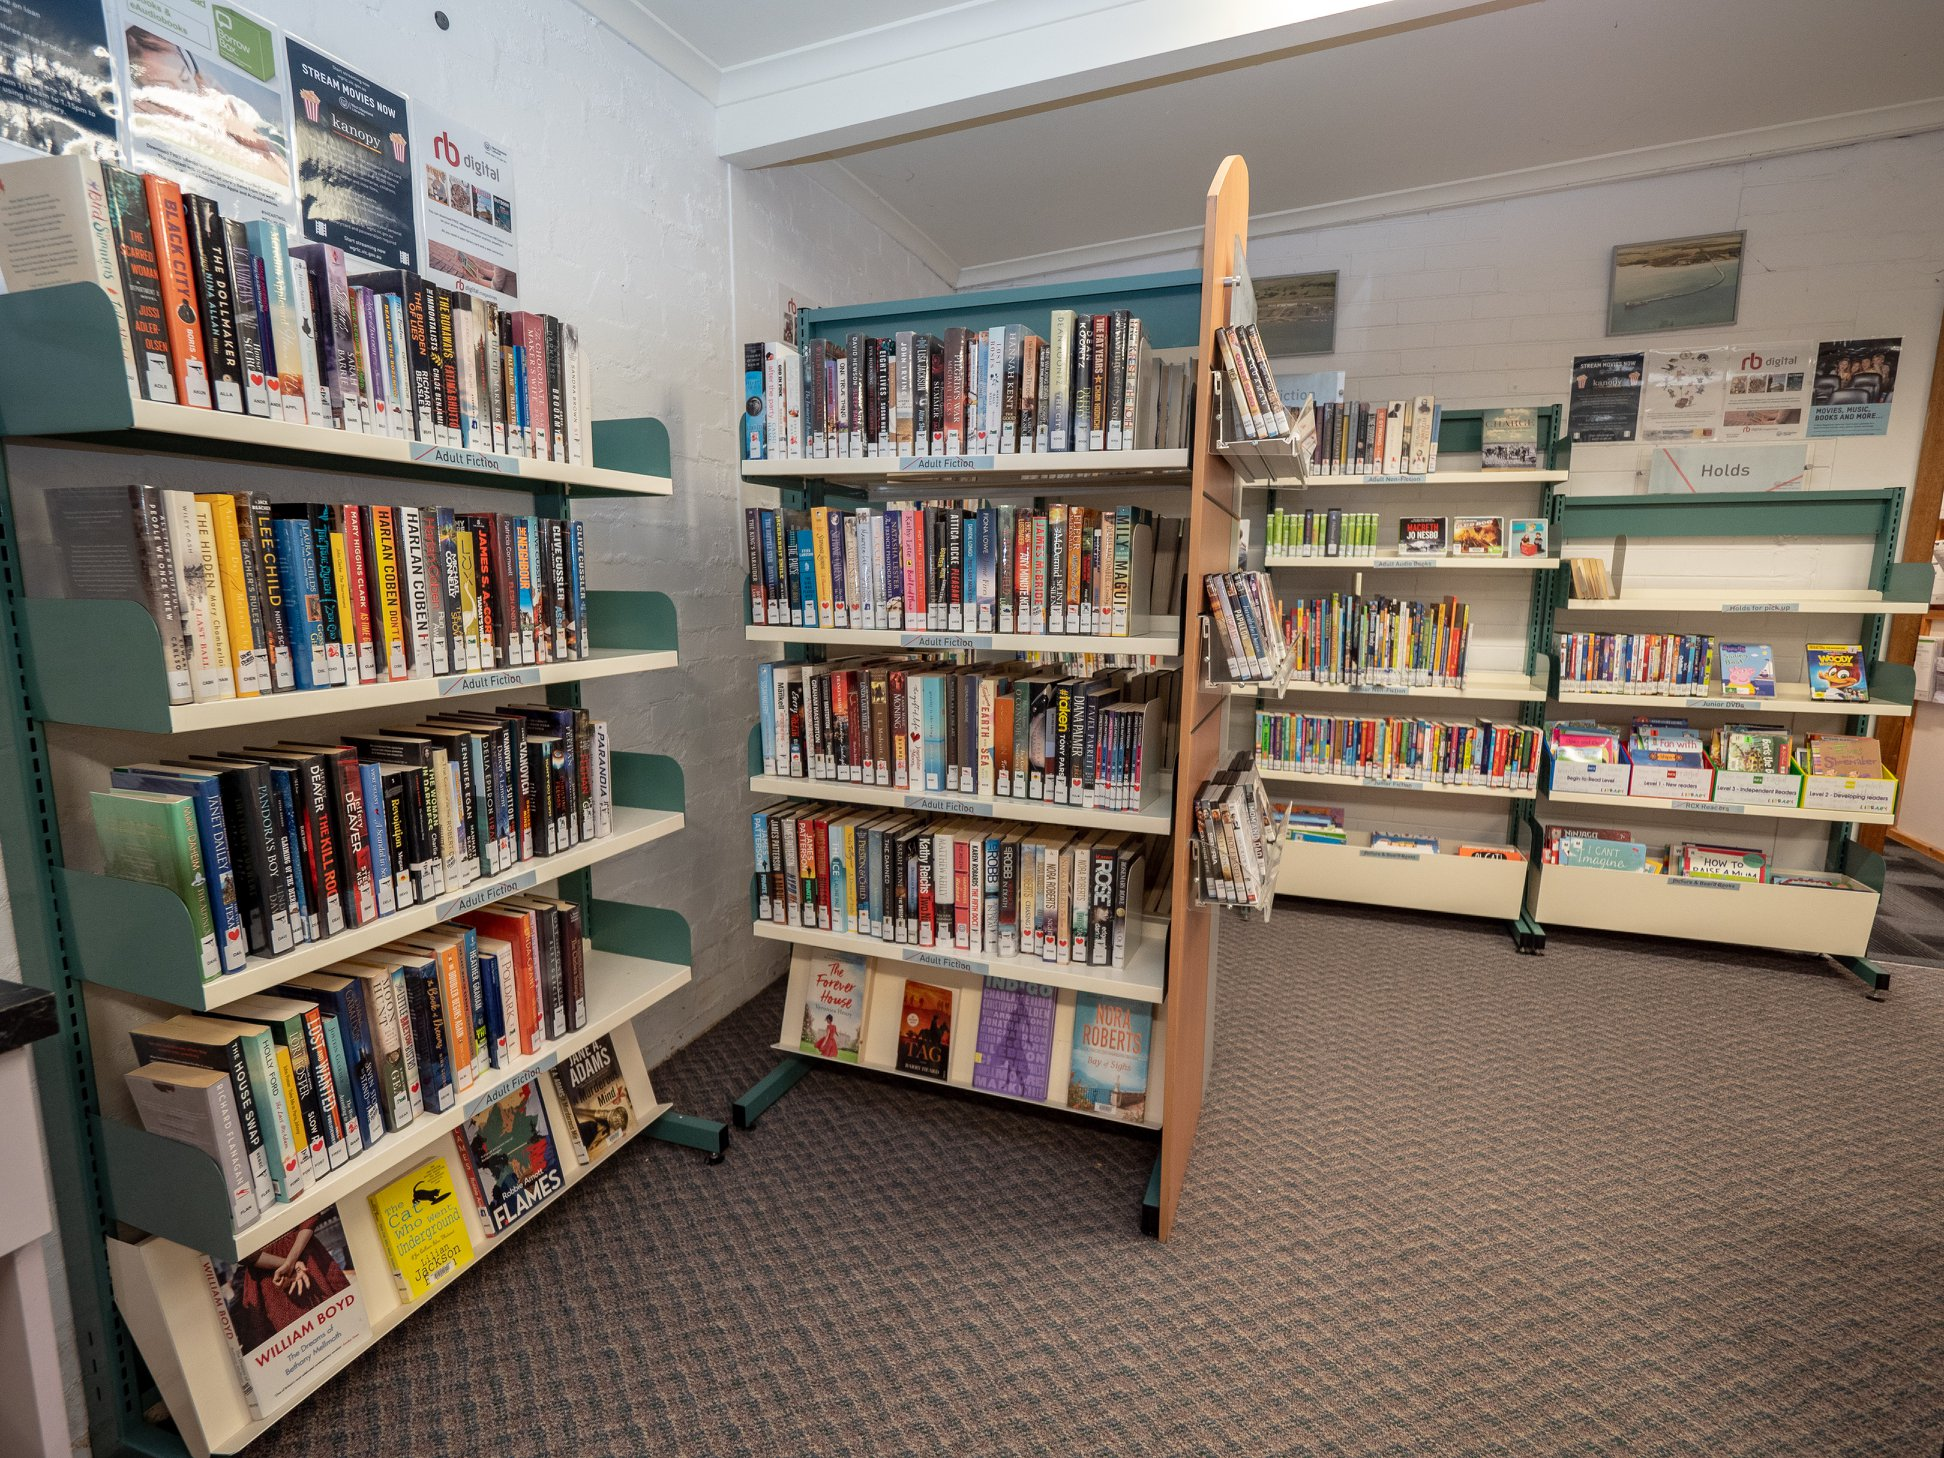 The Welshpool Community Library now open 5 days a week at the Rural Transaction Centre